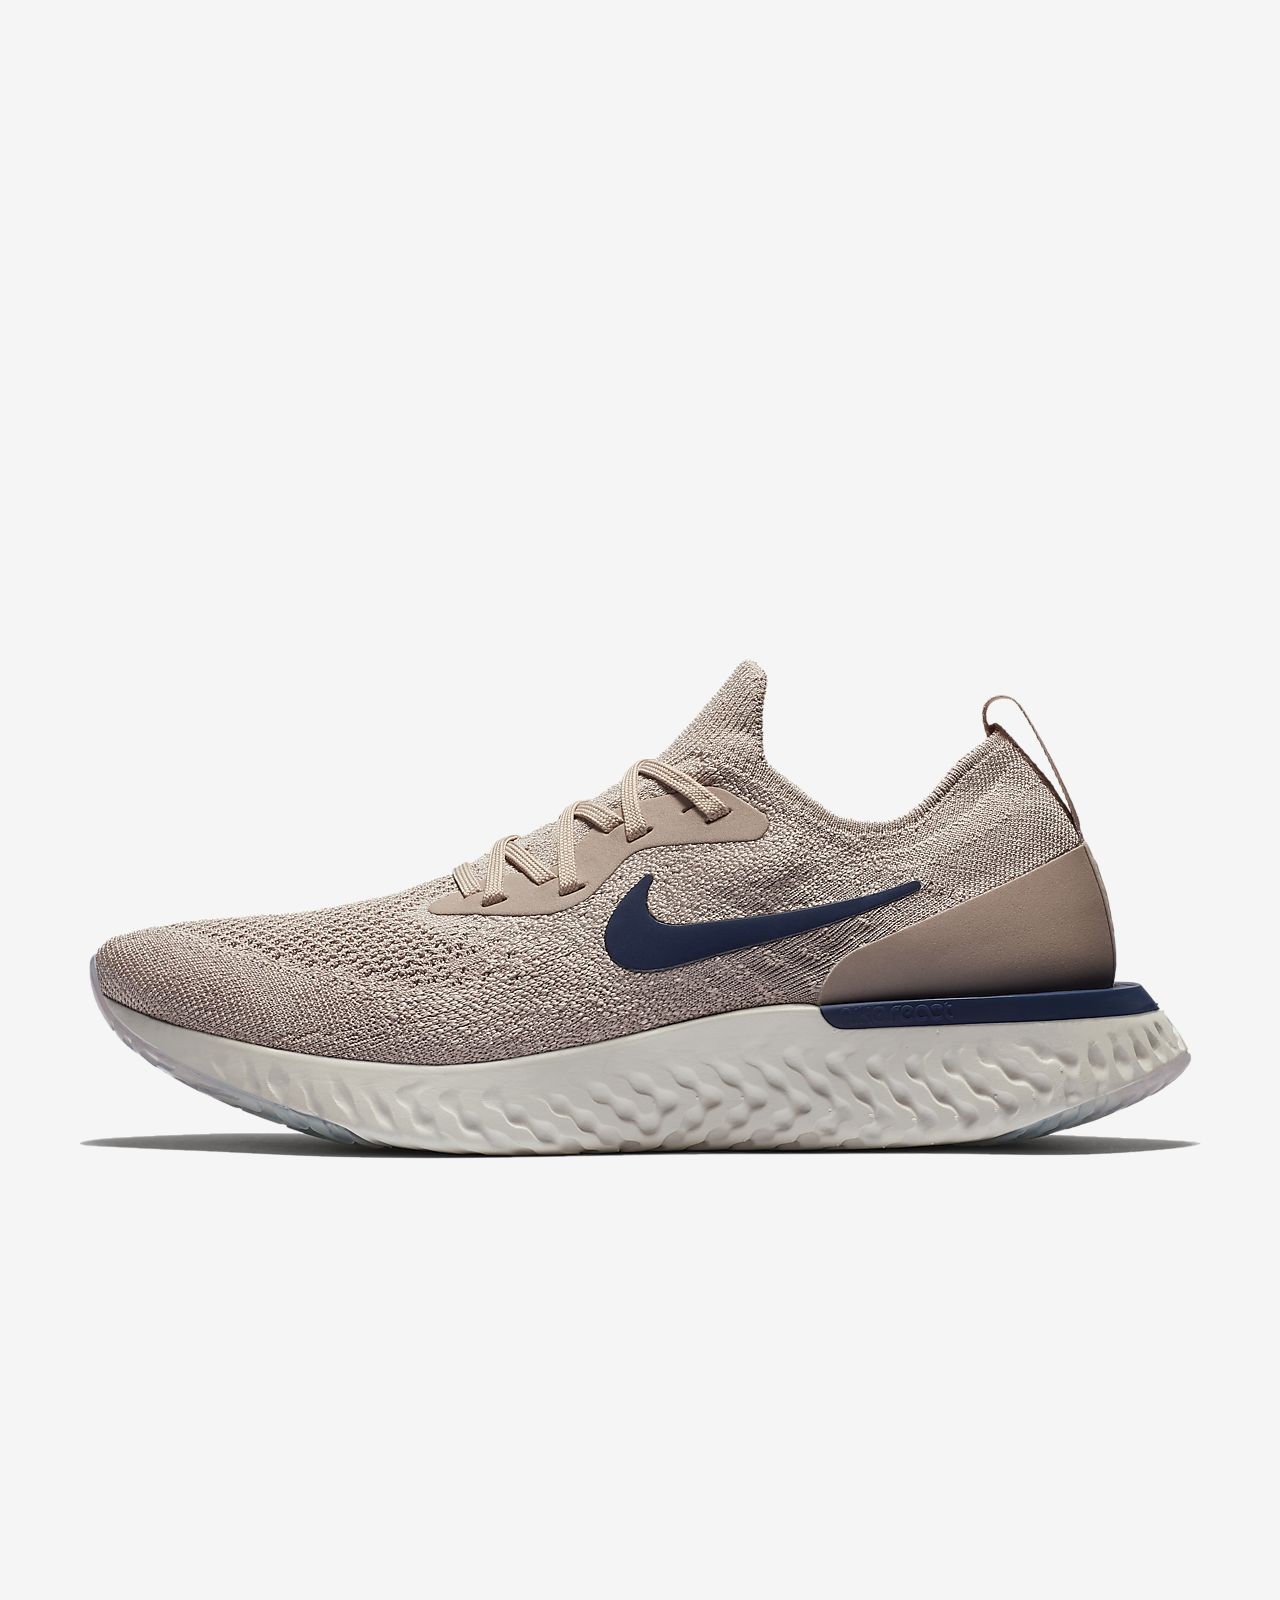 45a3c46c0d4b7 Nike Epic React Flyknit Men's Running Shoe. Nike.com CA